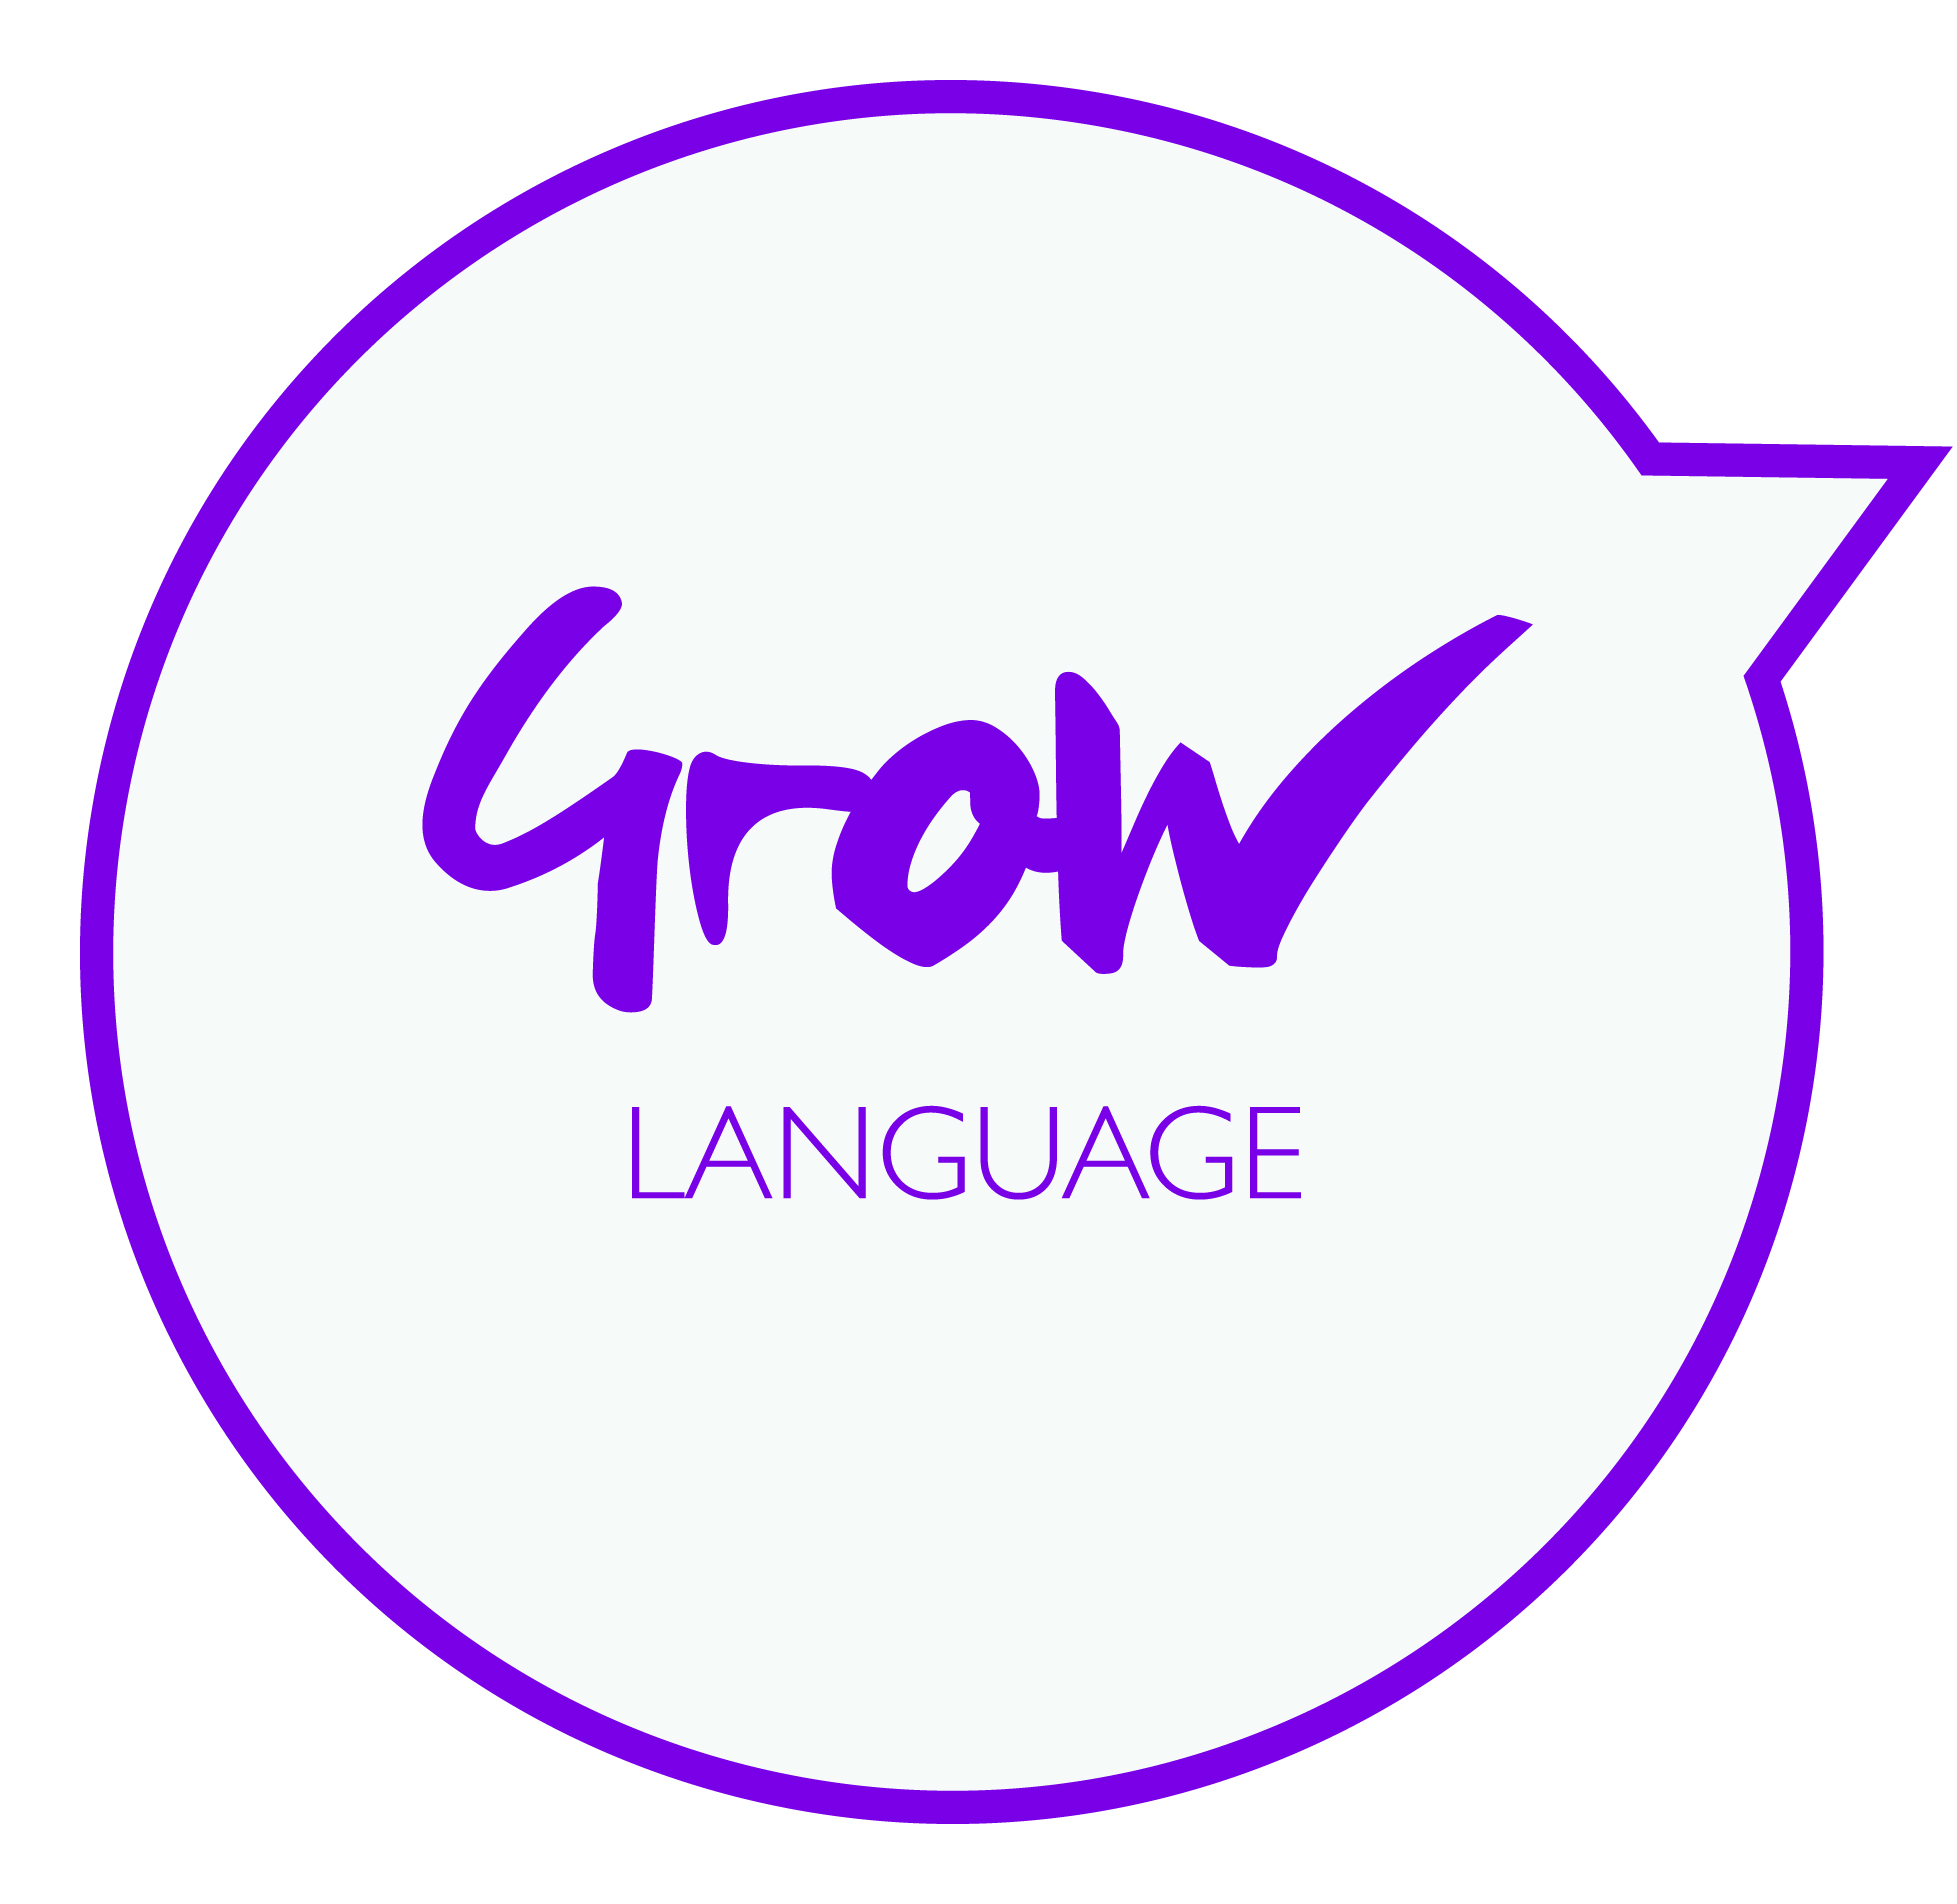 Grow Language